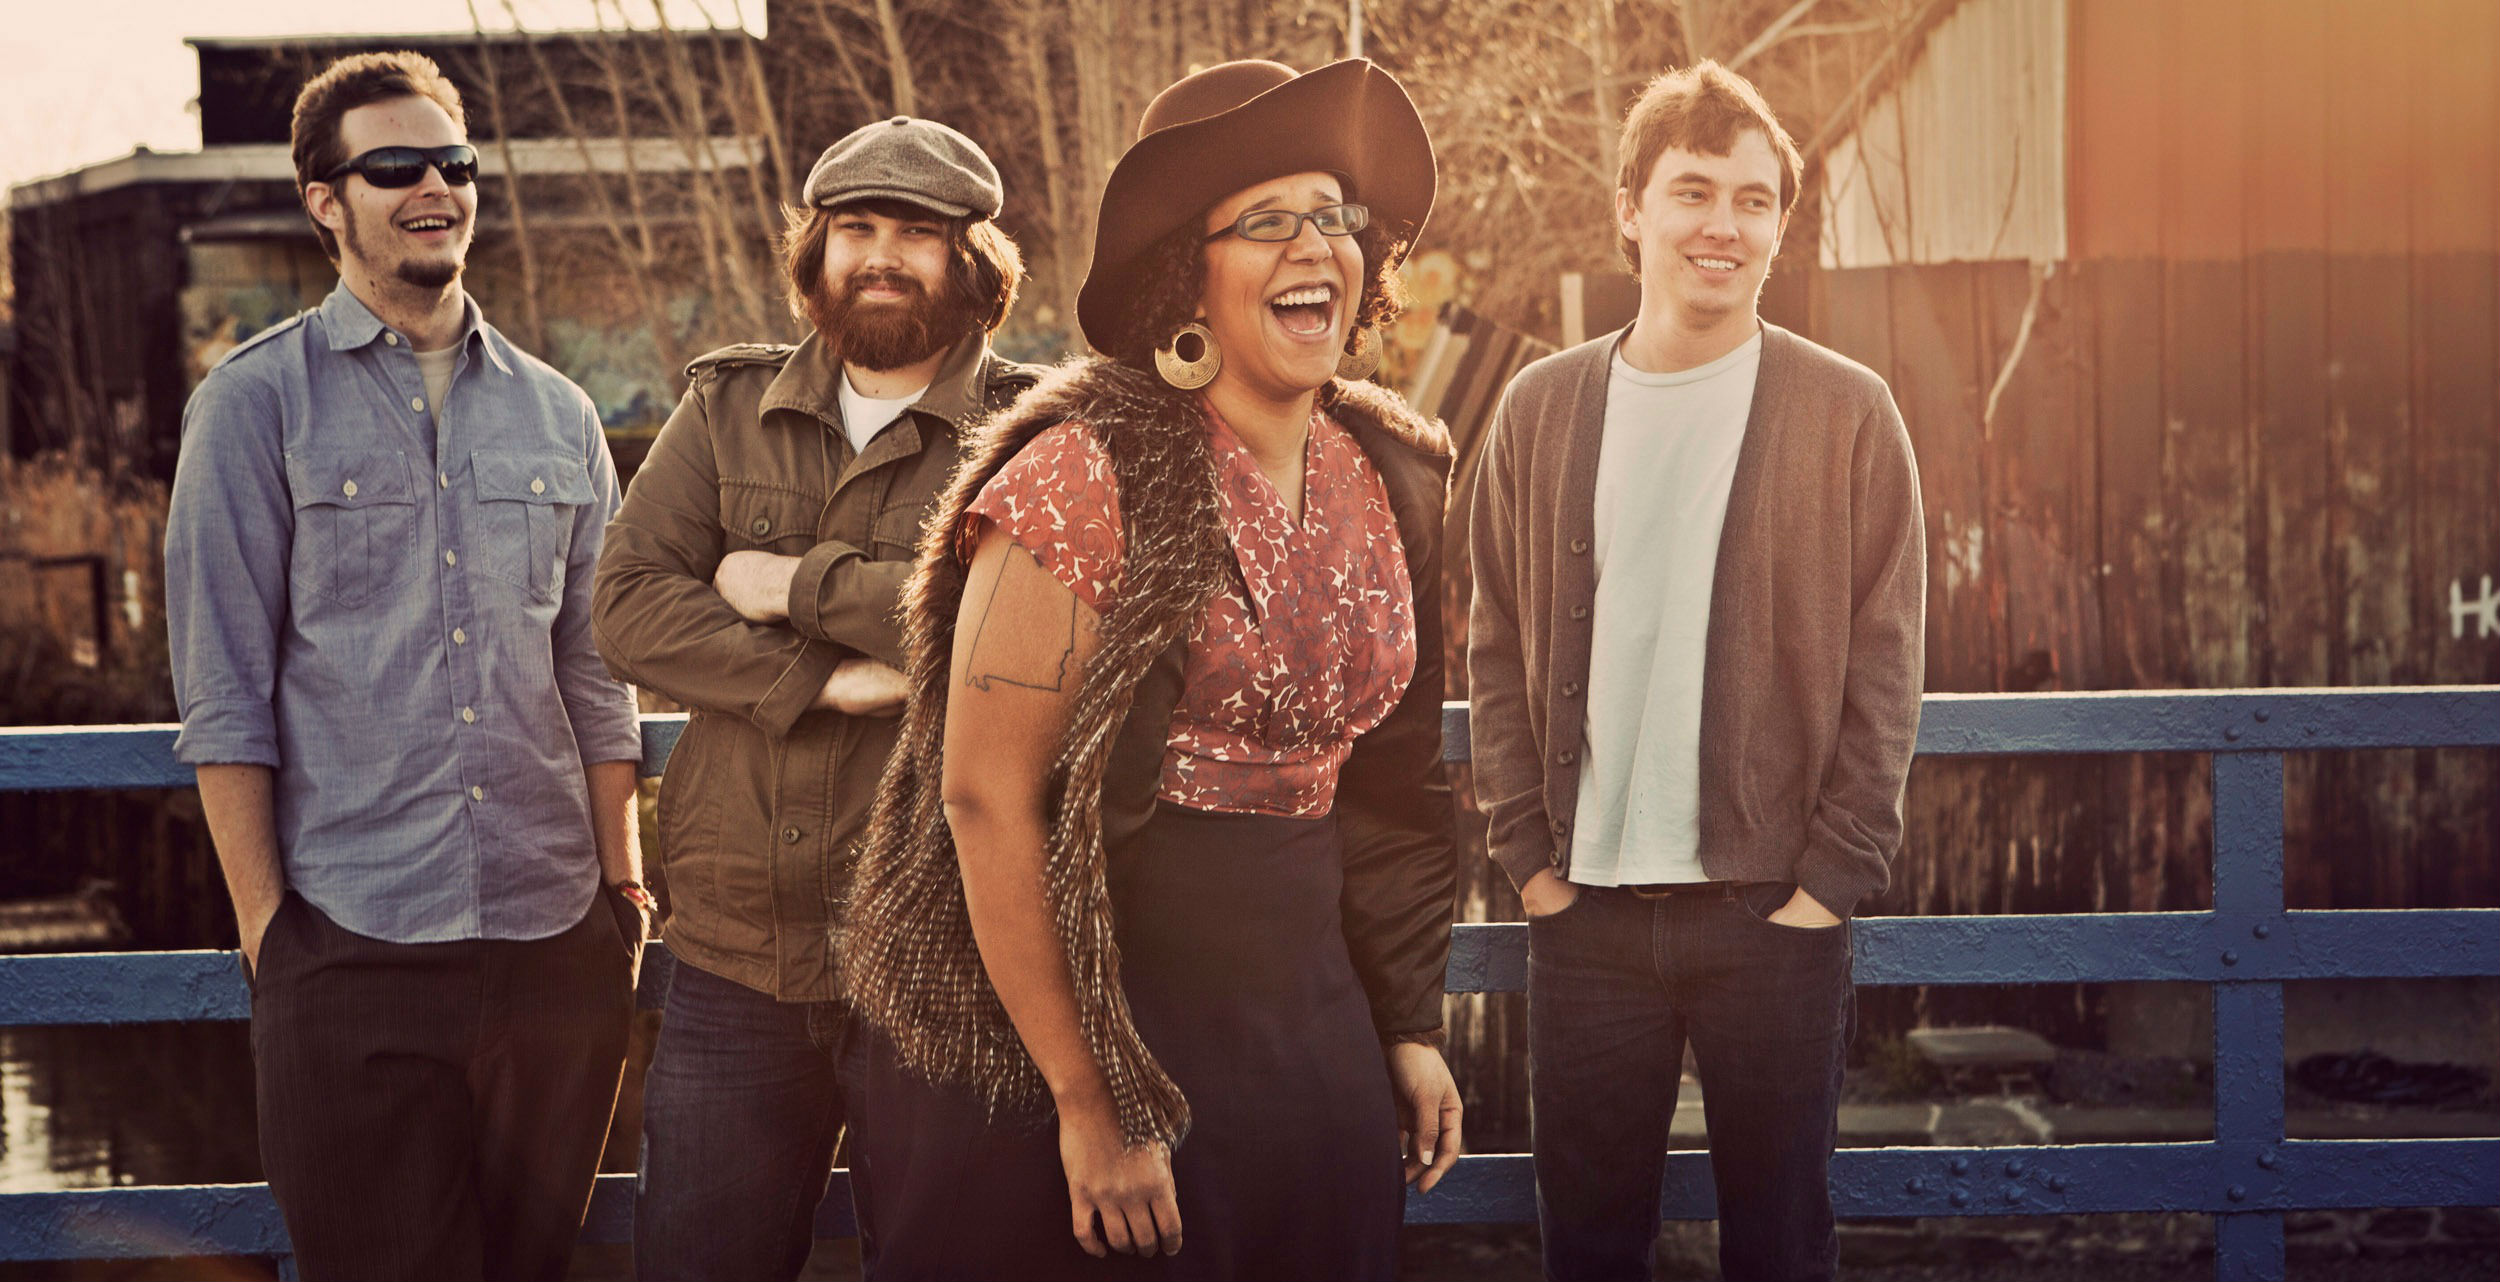 Resenha: Alabama Shakes - Sound & Color